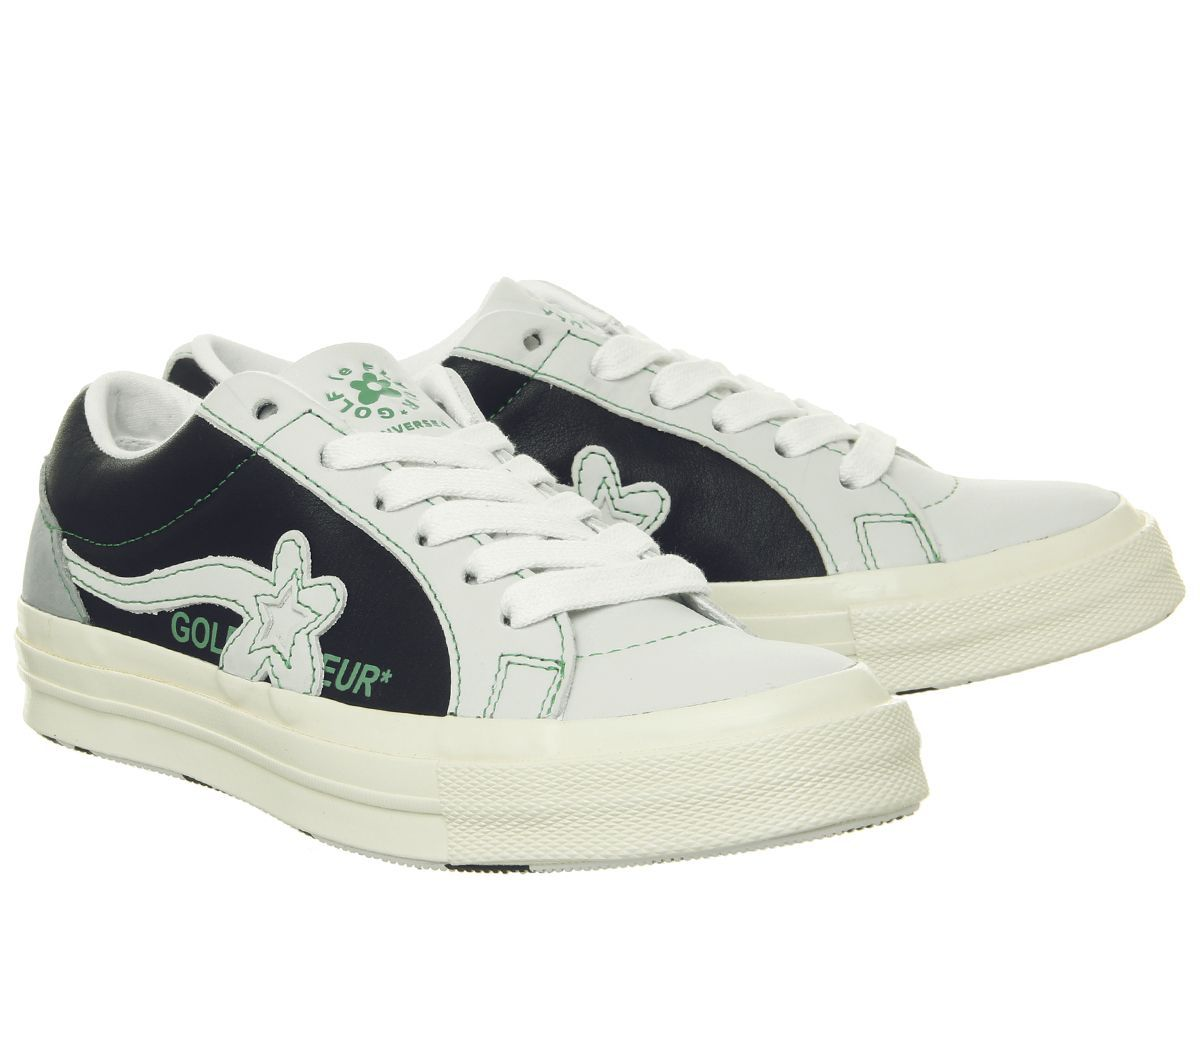 Converse One Star Trainers Ttc Barely